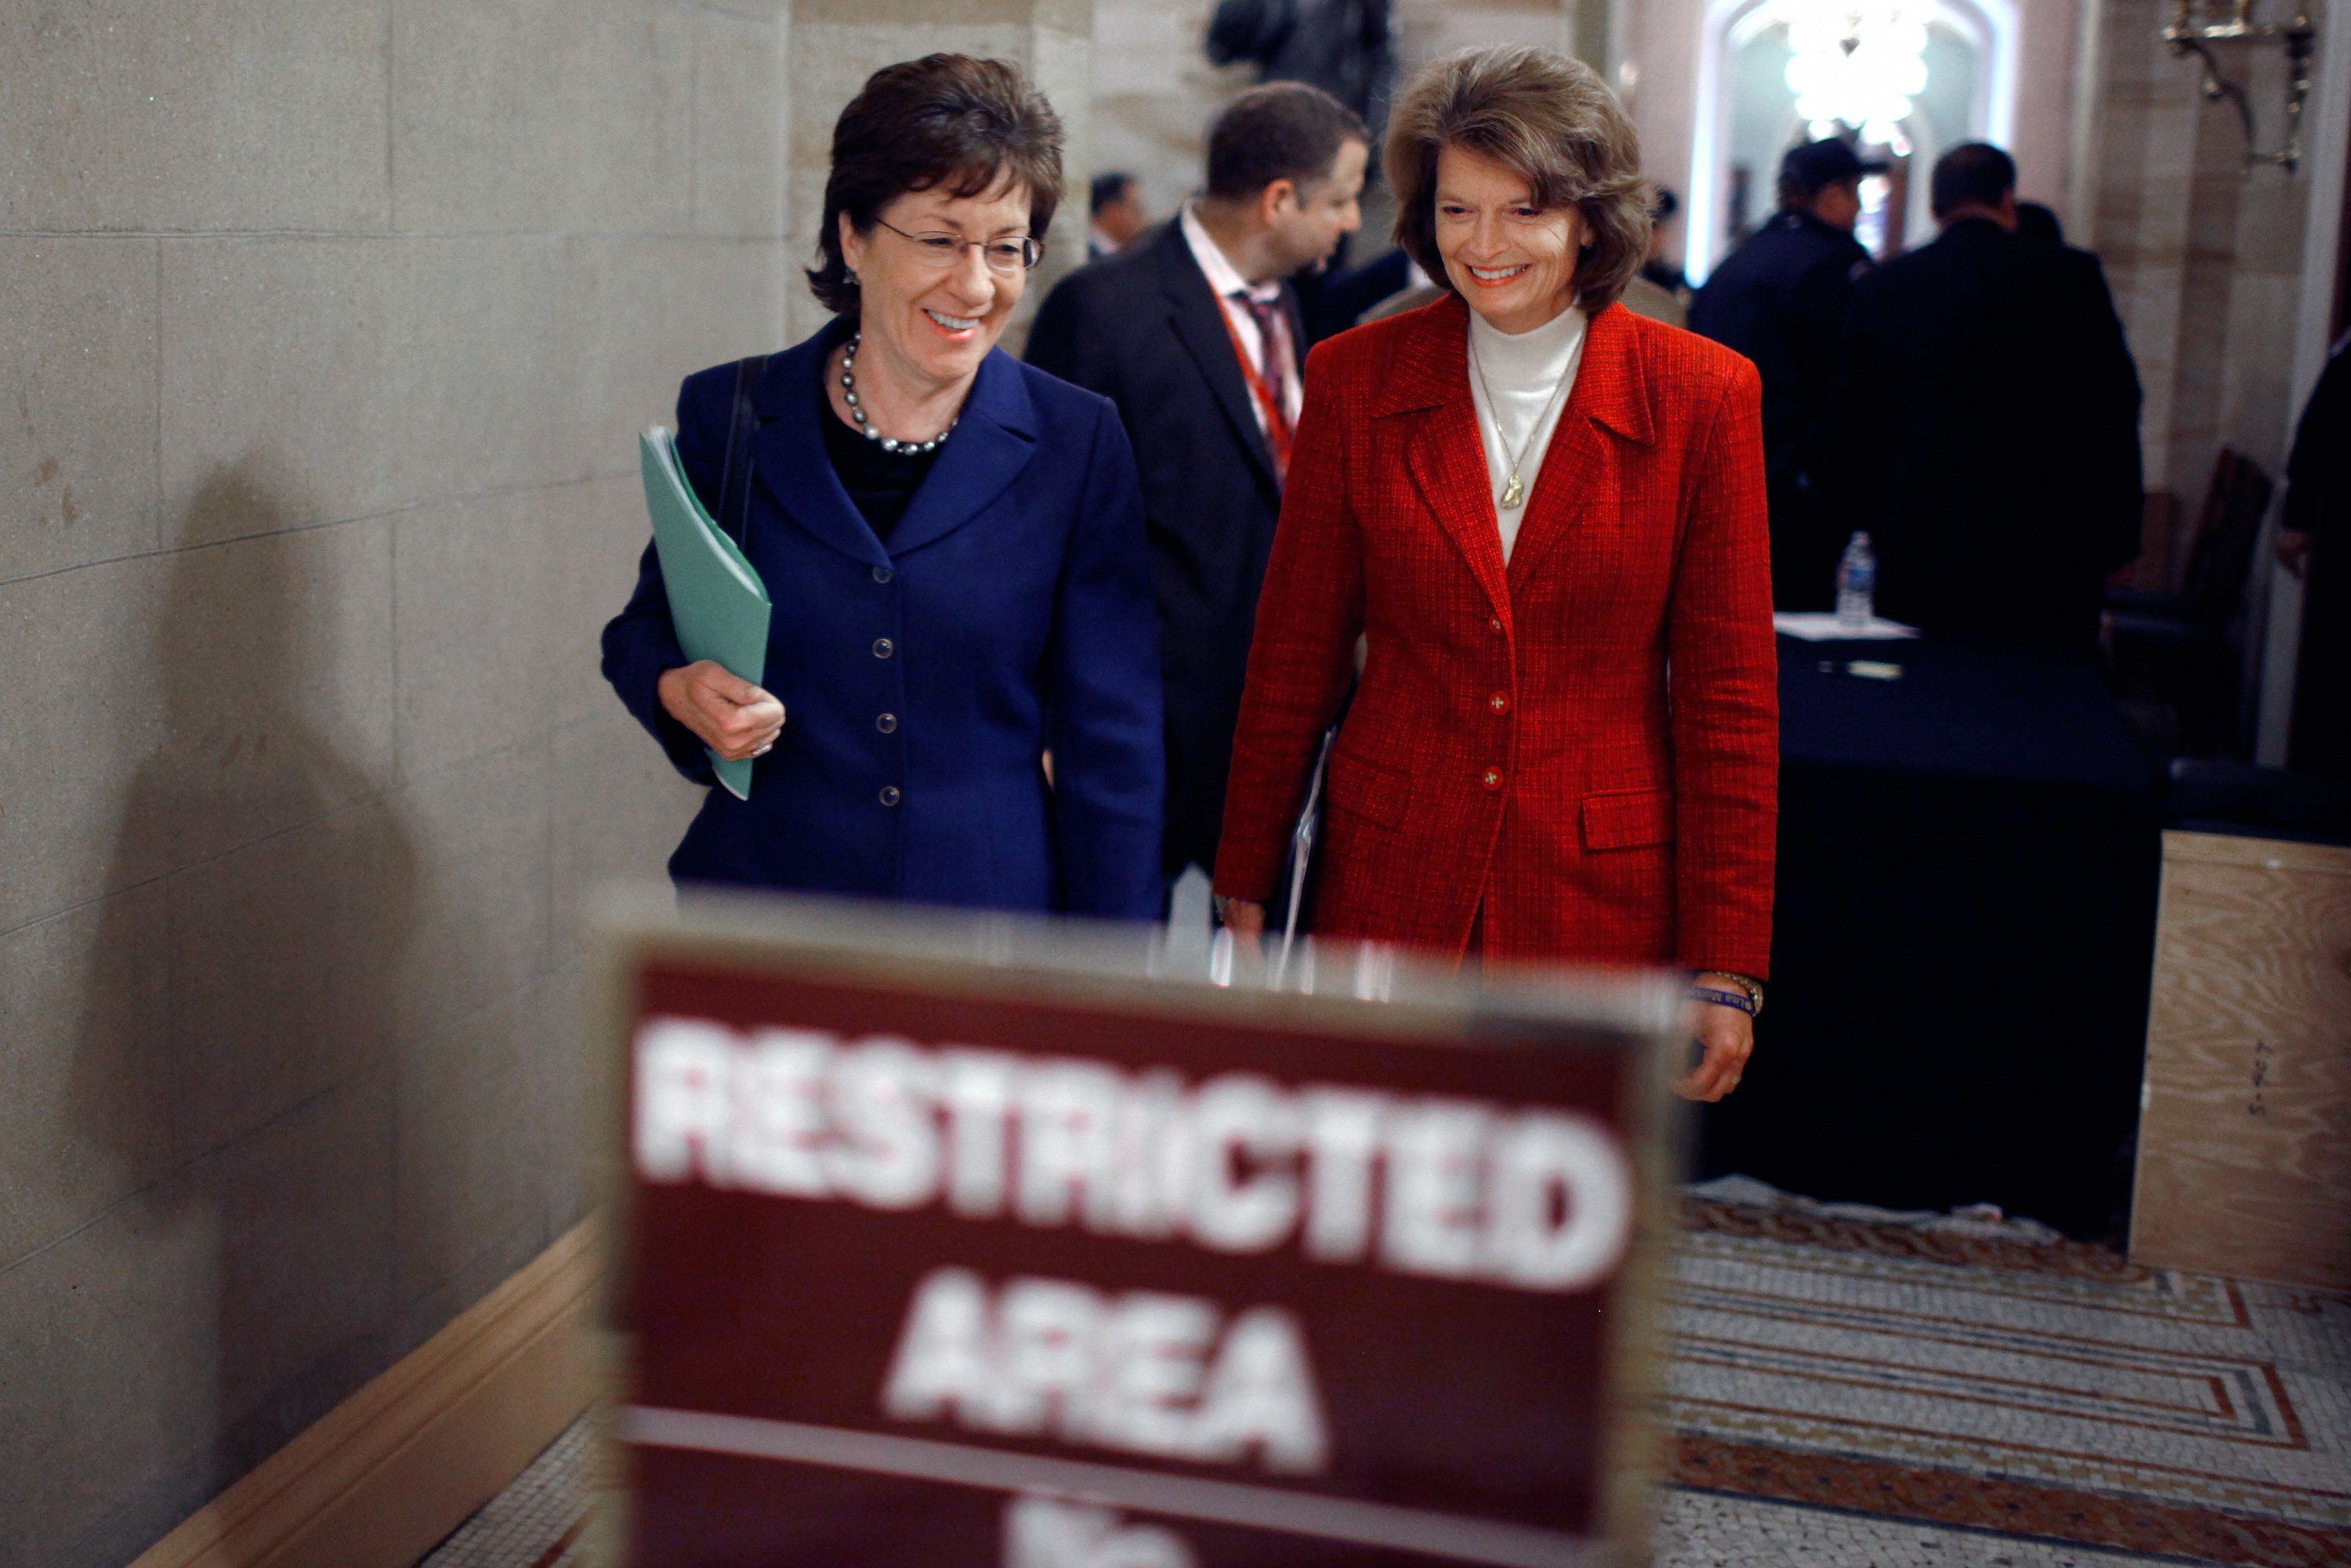 Sen. Susan Collins (R-Maine) and Sen. Lisa Murkowski (R-Alaska) in 2010.